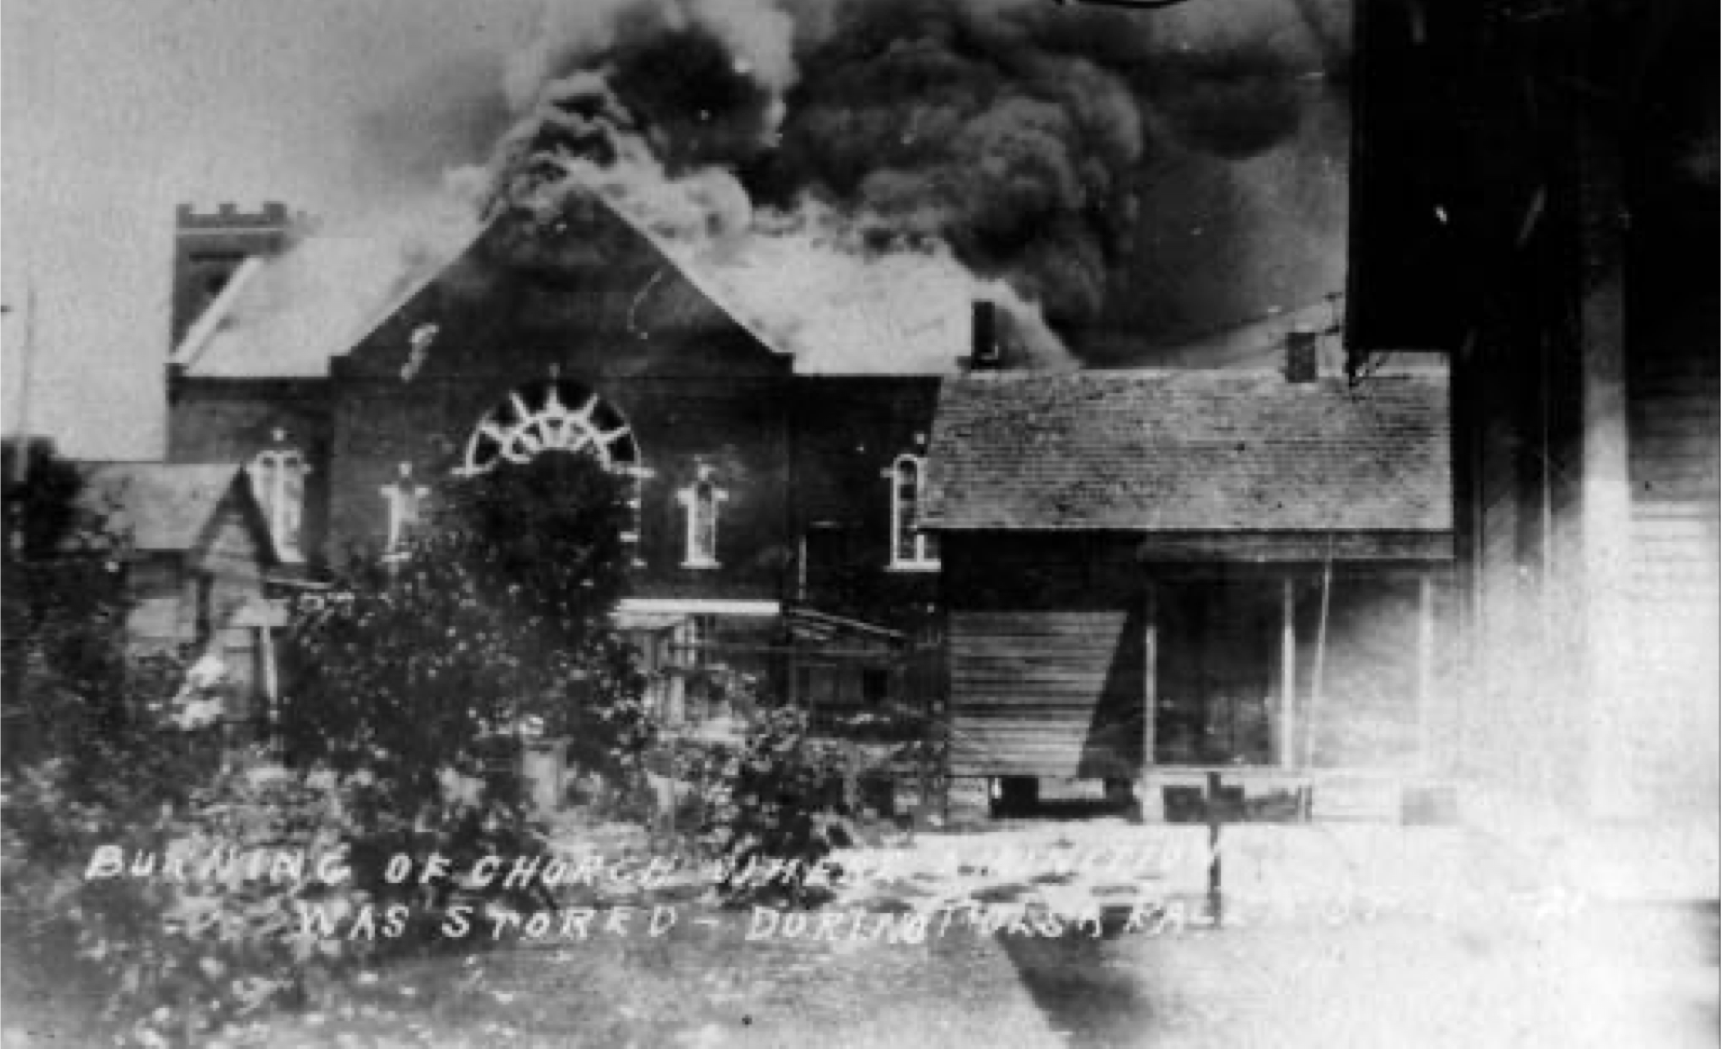 Dedicated only weeks before the riot, the Mount Zion Baptist Church was a great source of pride for many black Tulsans. But after a prolonged battle, the white rioters burned it—as well as more than a half dozen other African American churches—to the ground